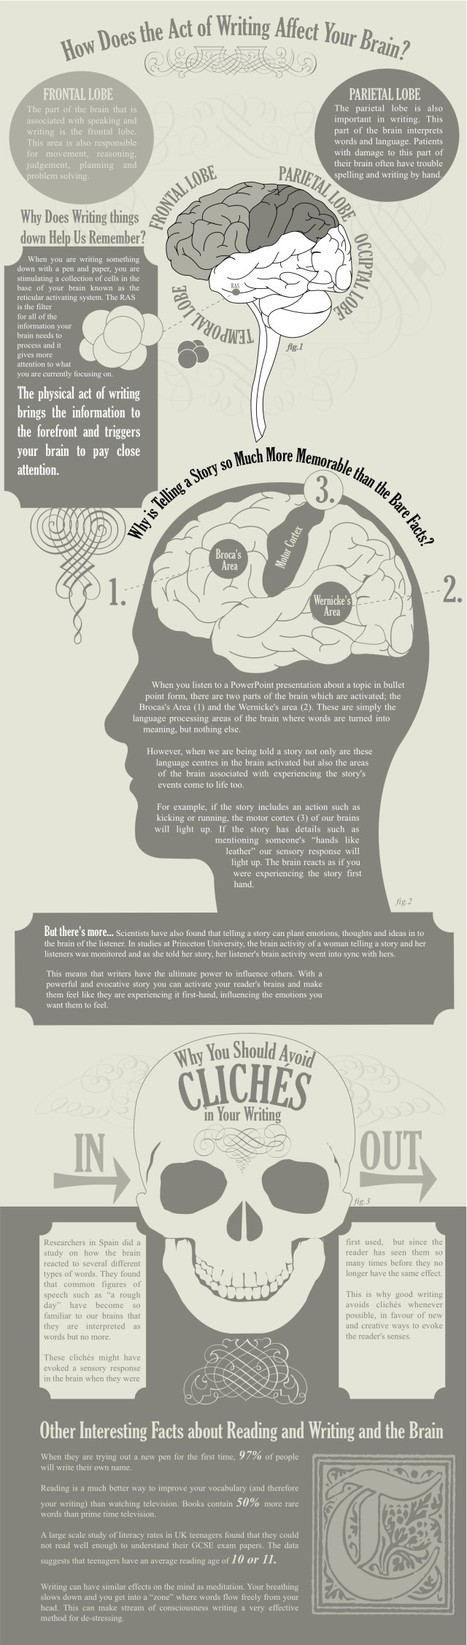 How Does Writing Affect Your Brain? [infographic] | IKT-TIC | Scoop.it